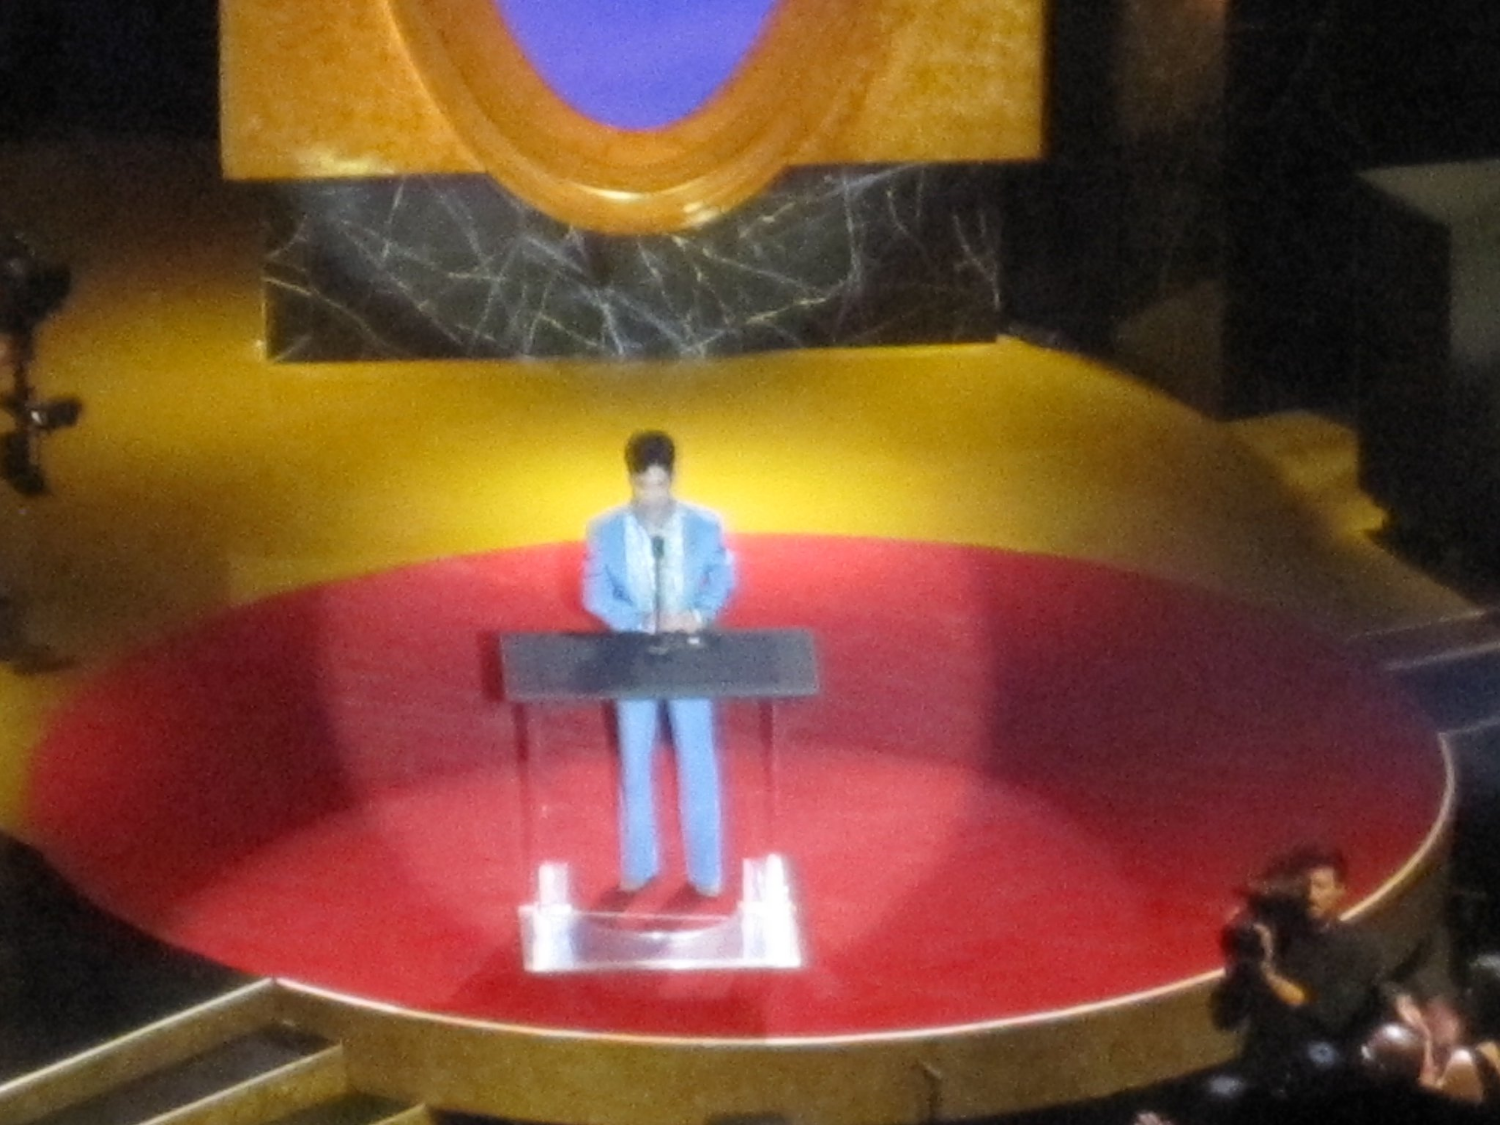 Prince presenting at the 2011 NAACP Image Awards. I really tested my camera's zoom capabilities for this one, but hey, IT'S PRINCE.